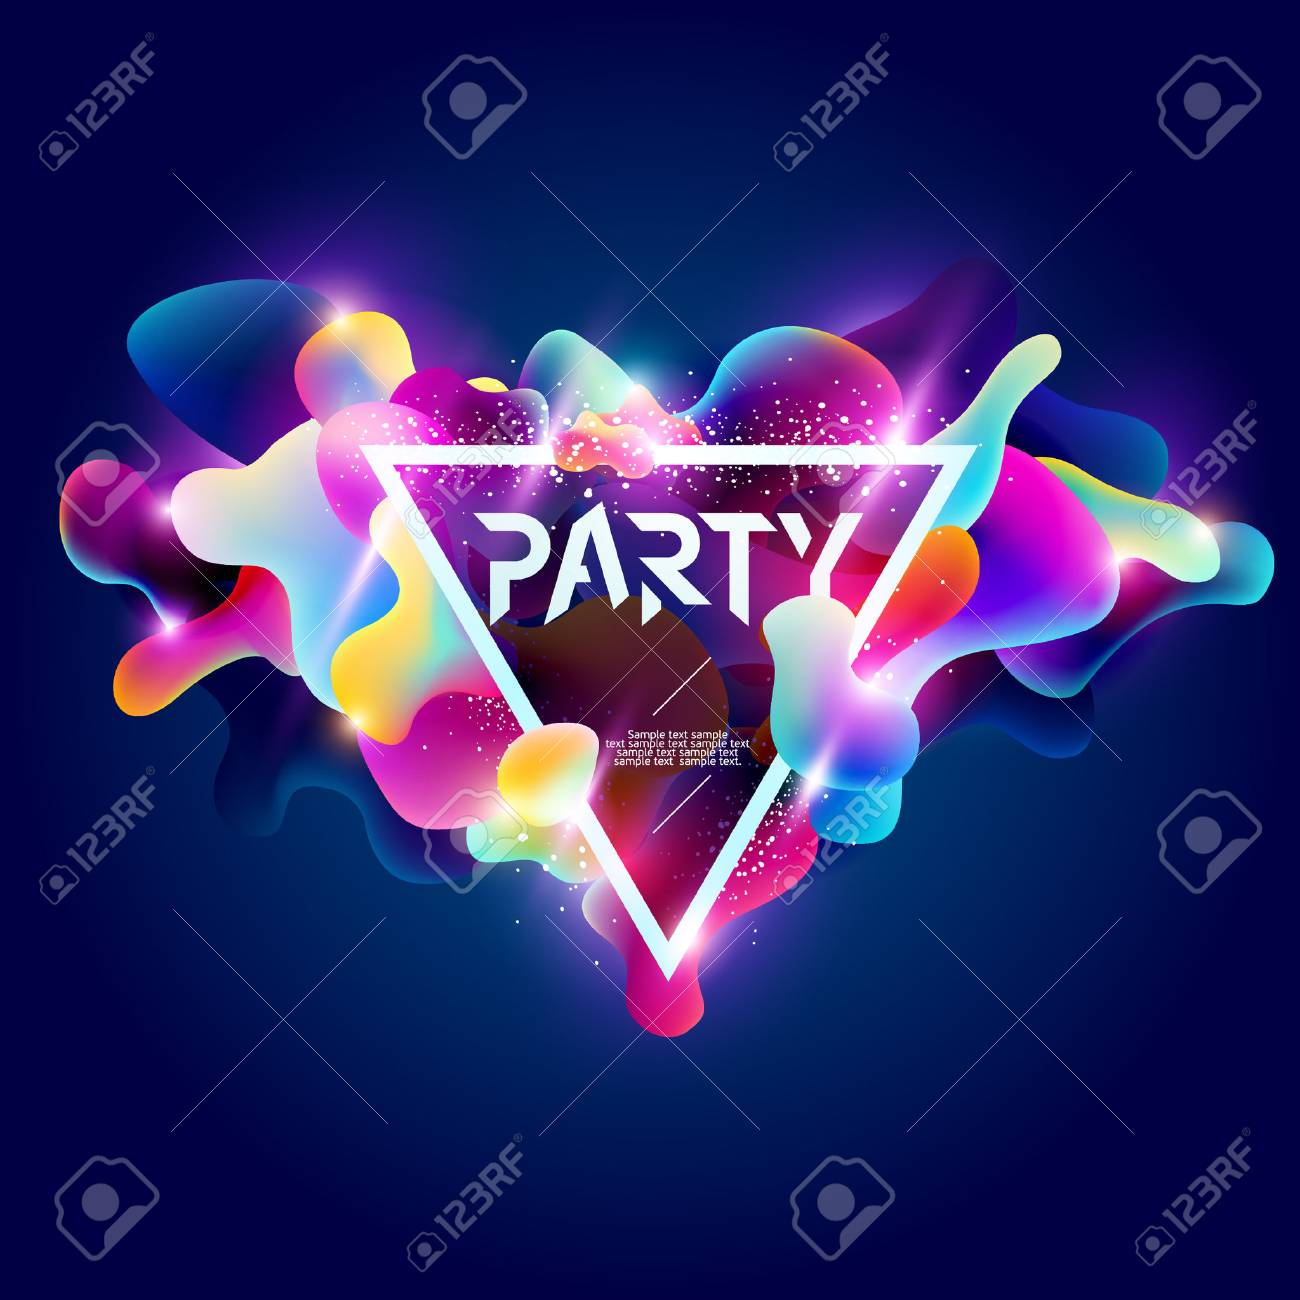 Poster for party. Plastic colorful shapes. - 61095675